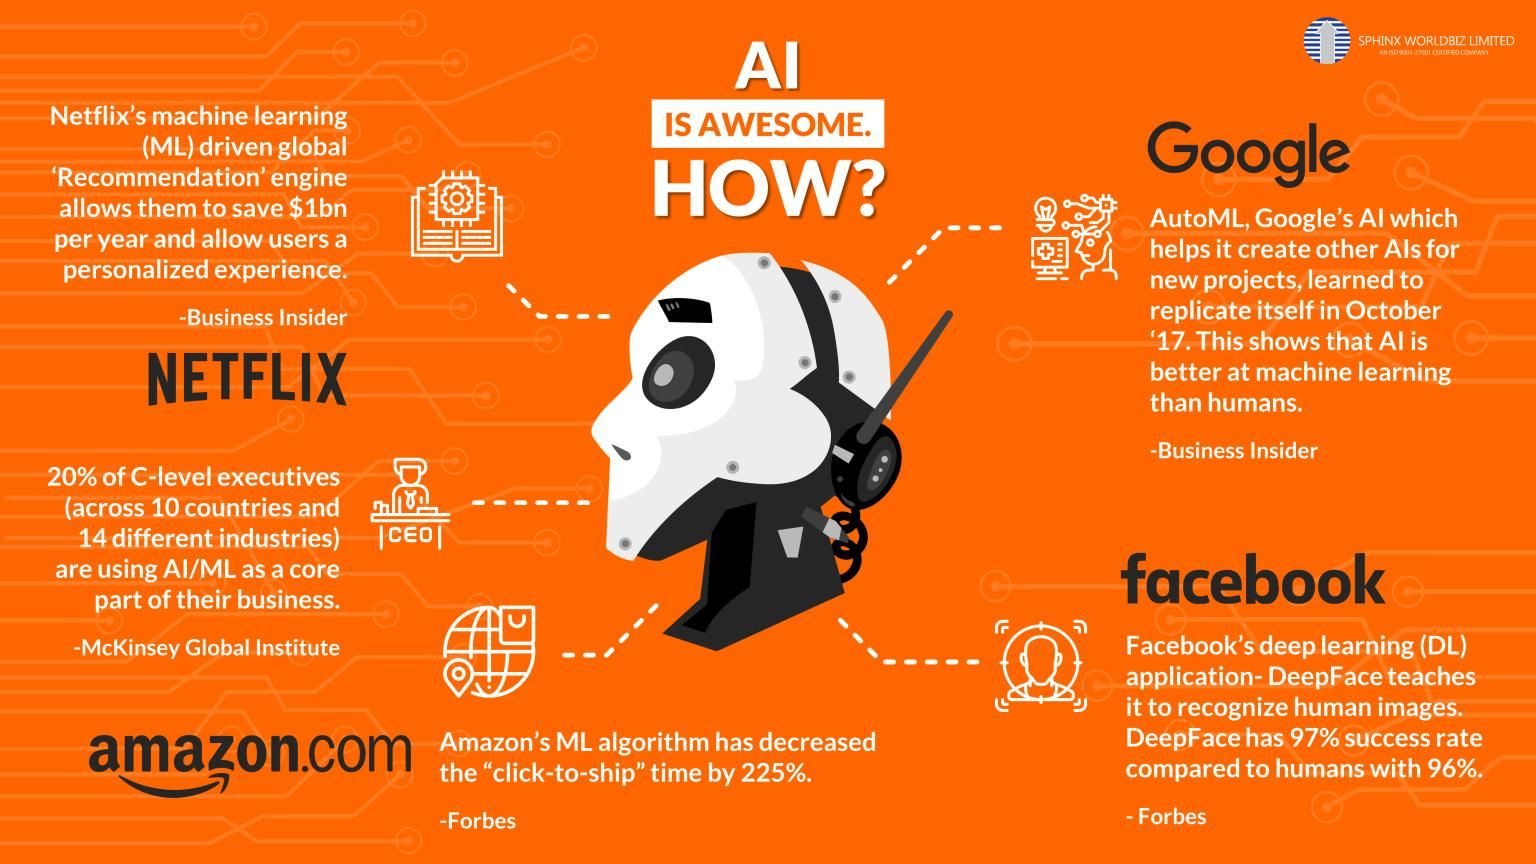 Artificial Intelligence (AI) is Awesome. How? Artificial